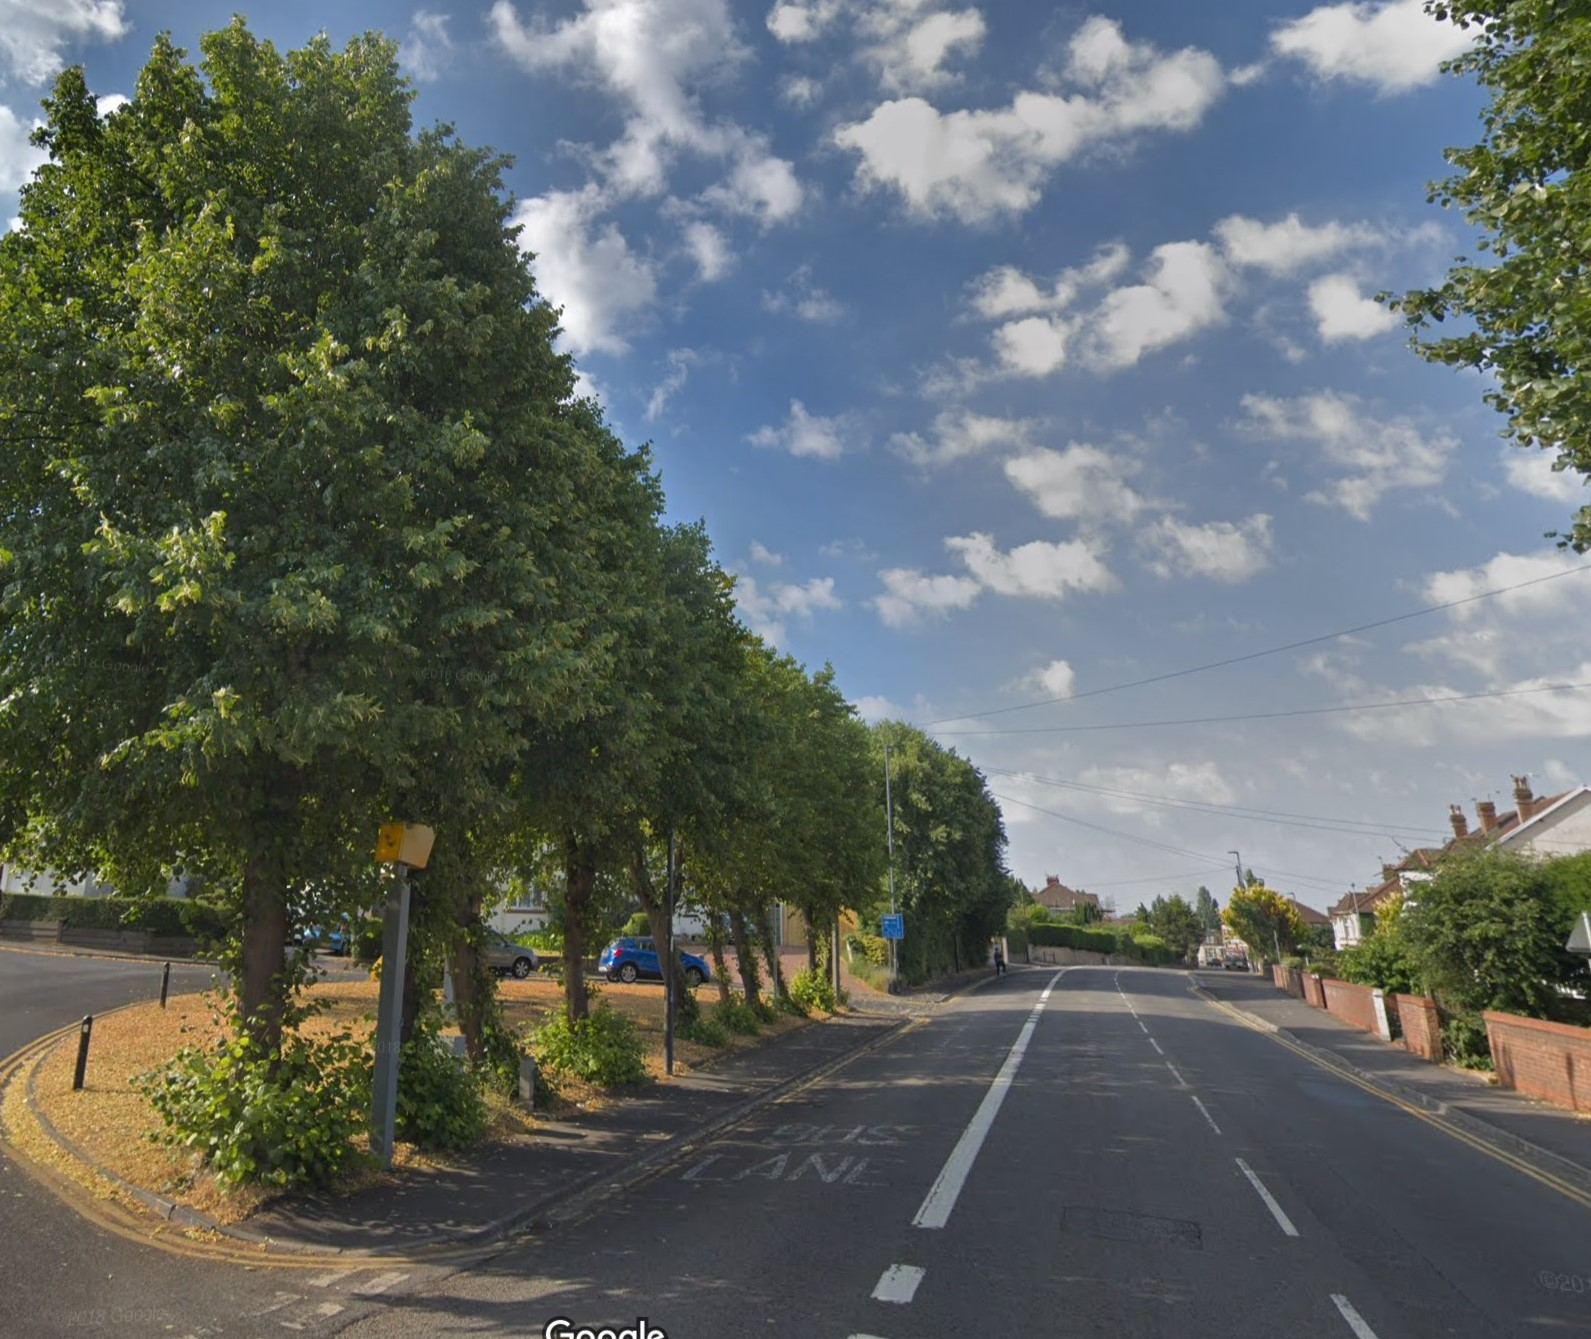 Filton speed camera is most active in residential areas